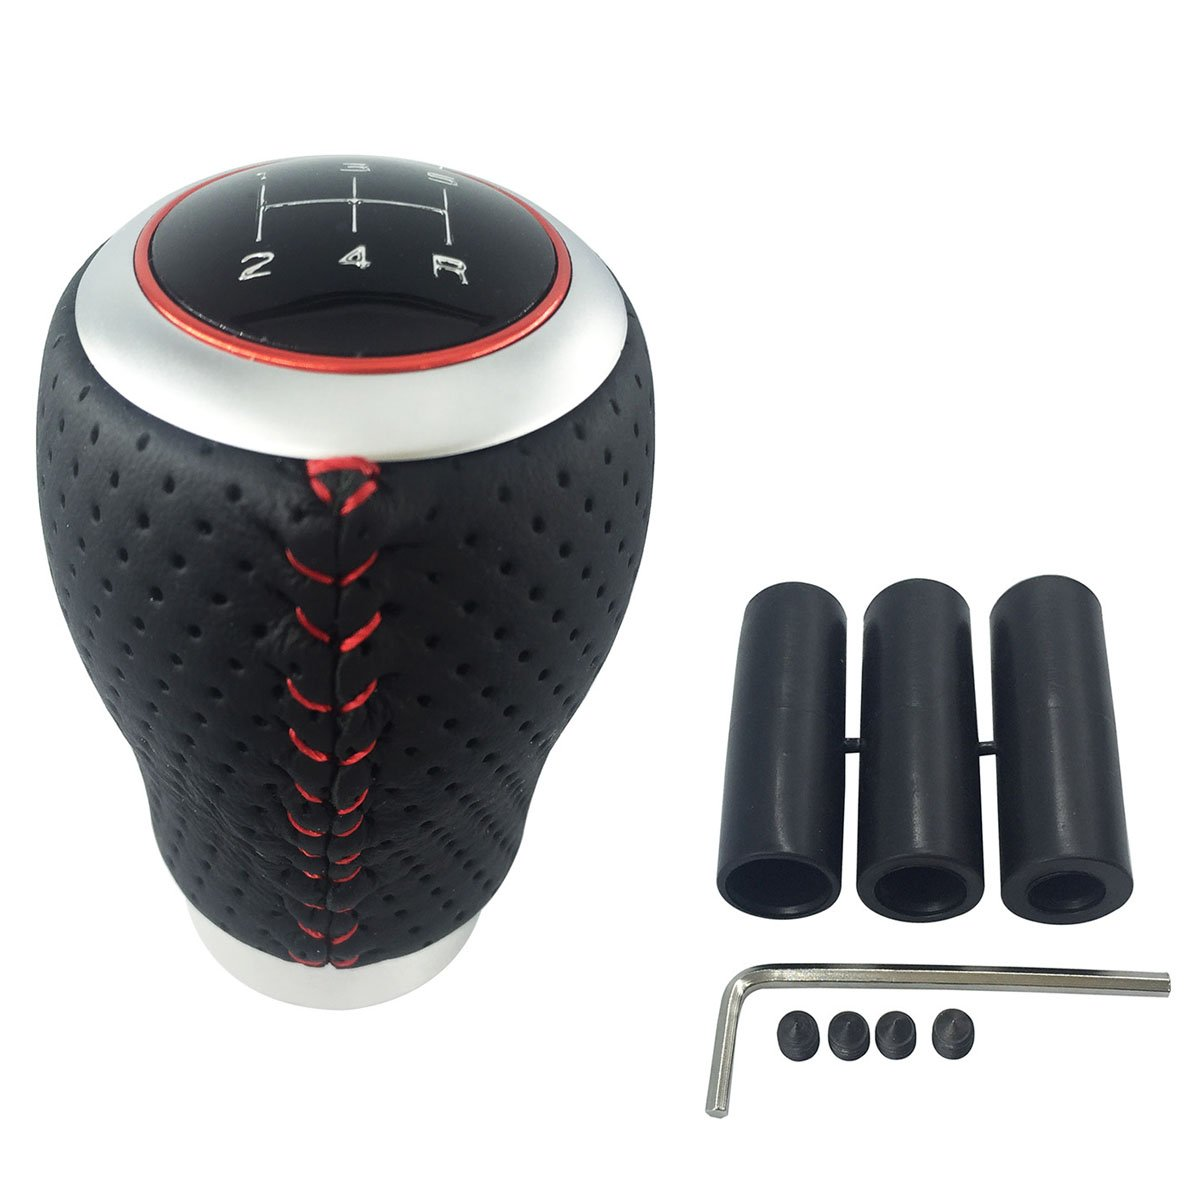 Abfer Shift Knob Leather 5 Speed Manual Car Gear Shift Head Shifter Lever Stick (Red Line)